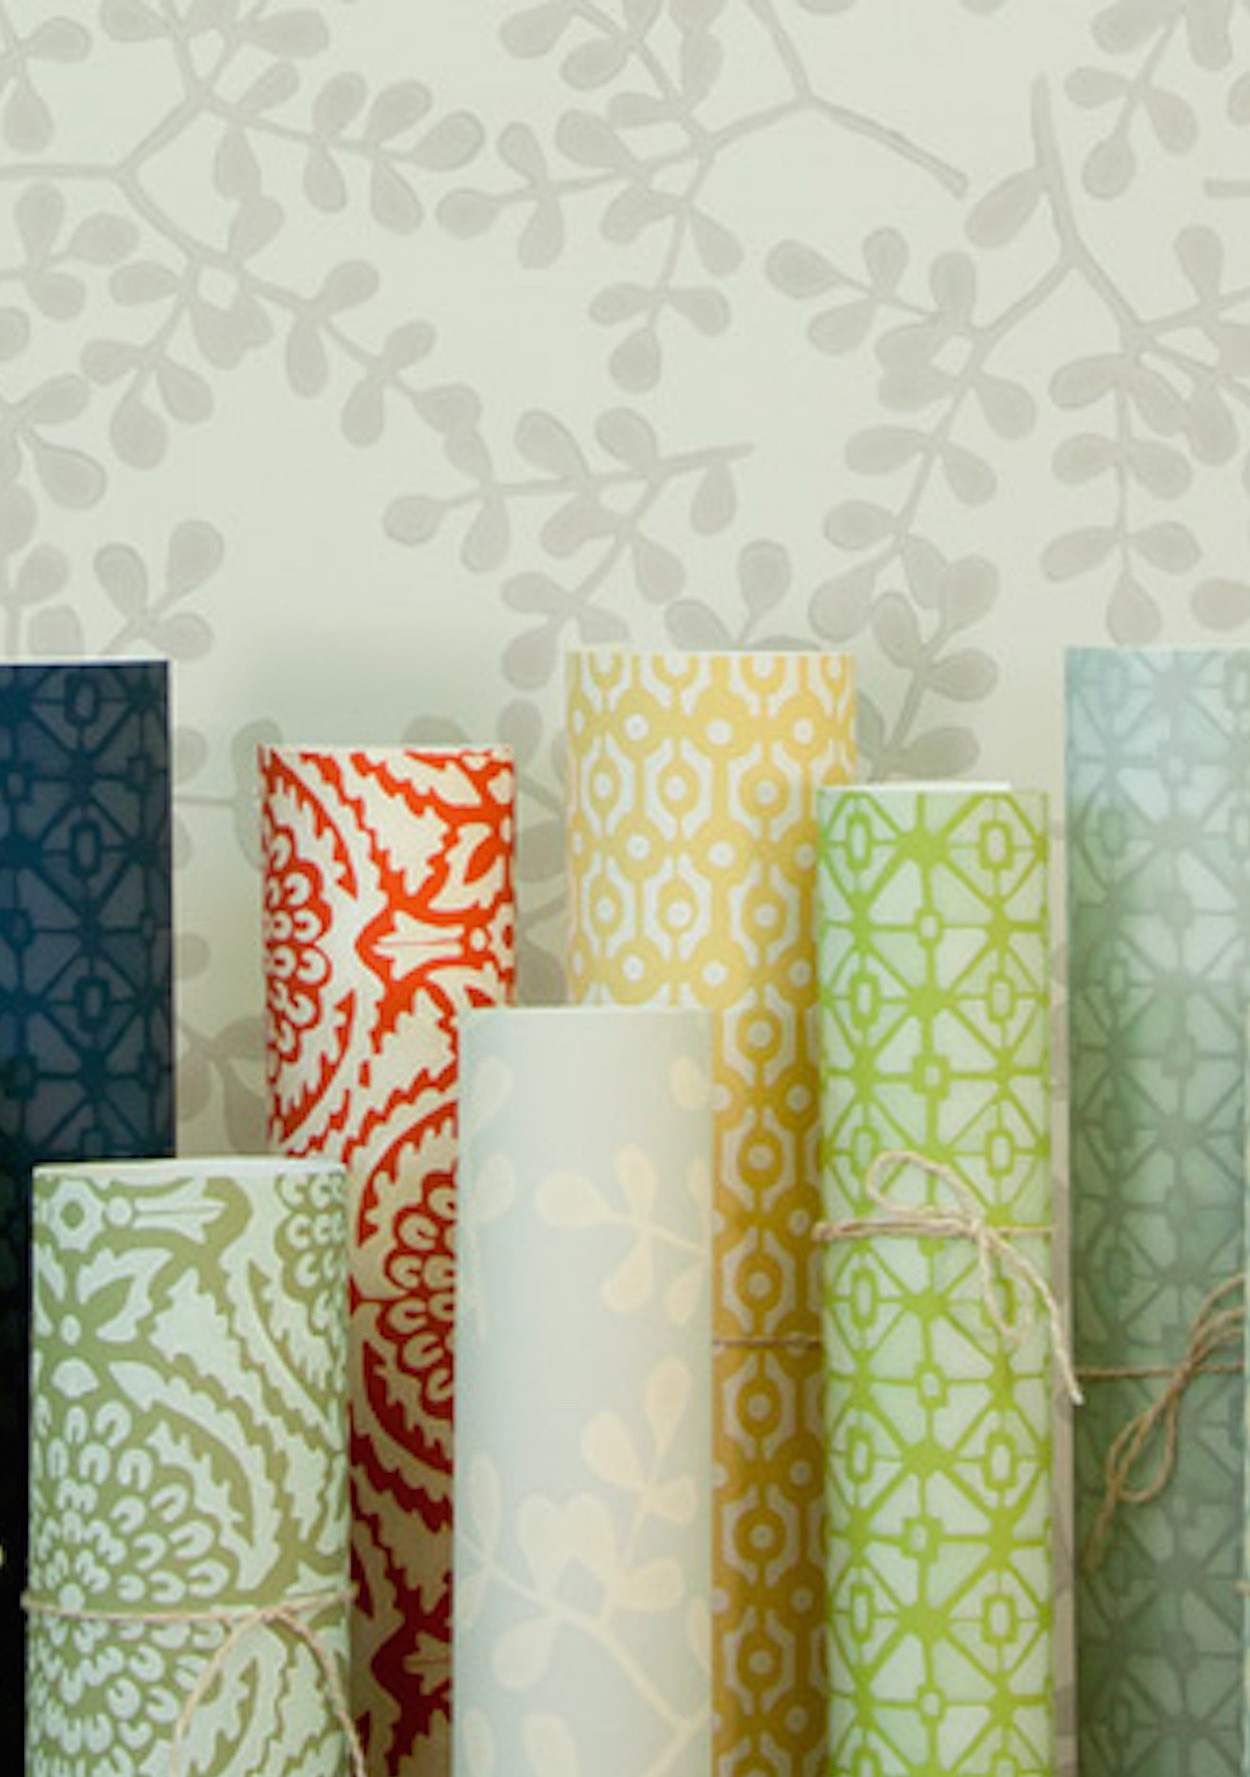 8 unexpected wallpaper ideas to try in your home martha